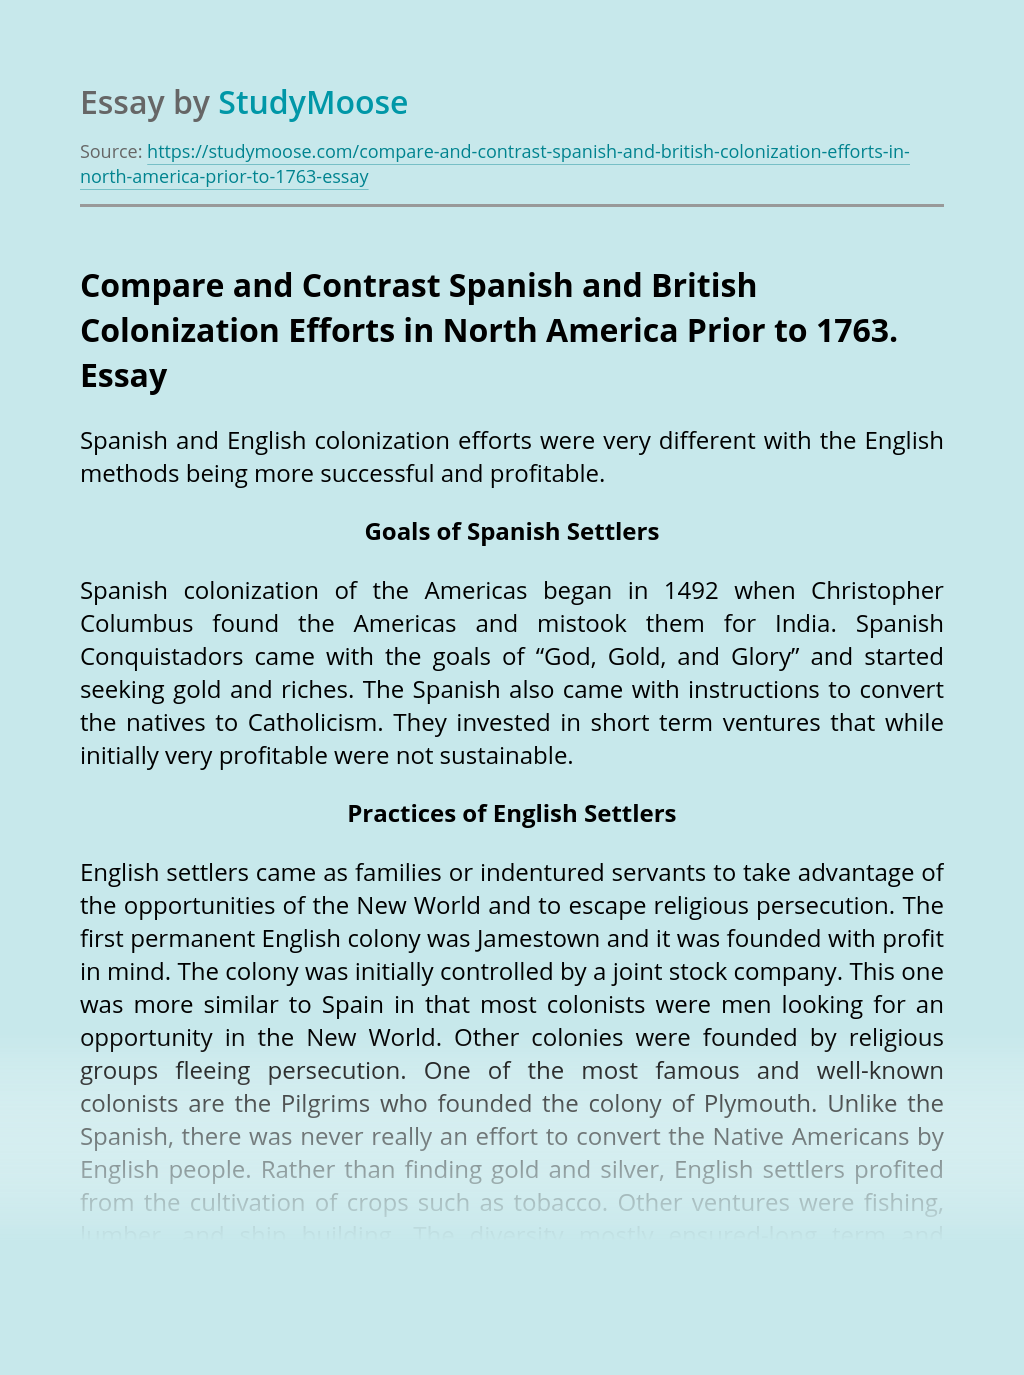 Compare and Contrast Spanish and British Colonization Efforts in North America Prior to 1763.